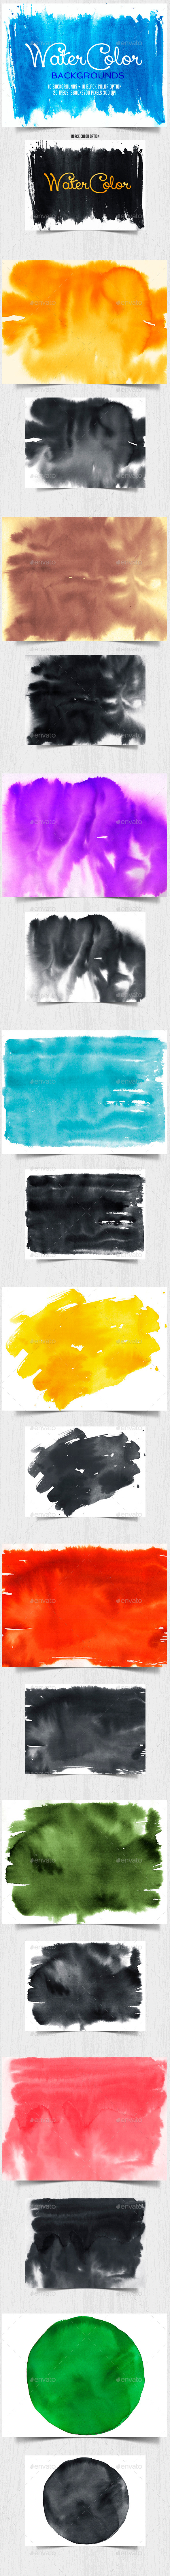 Watercolor Backgrounds 2 - Backgrounds Graphics